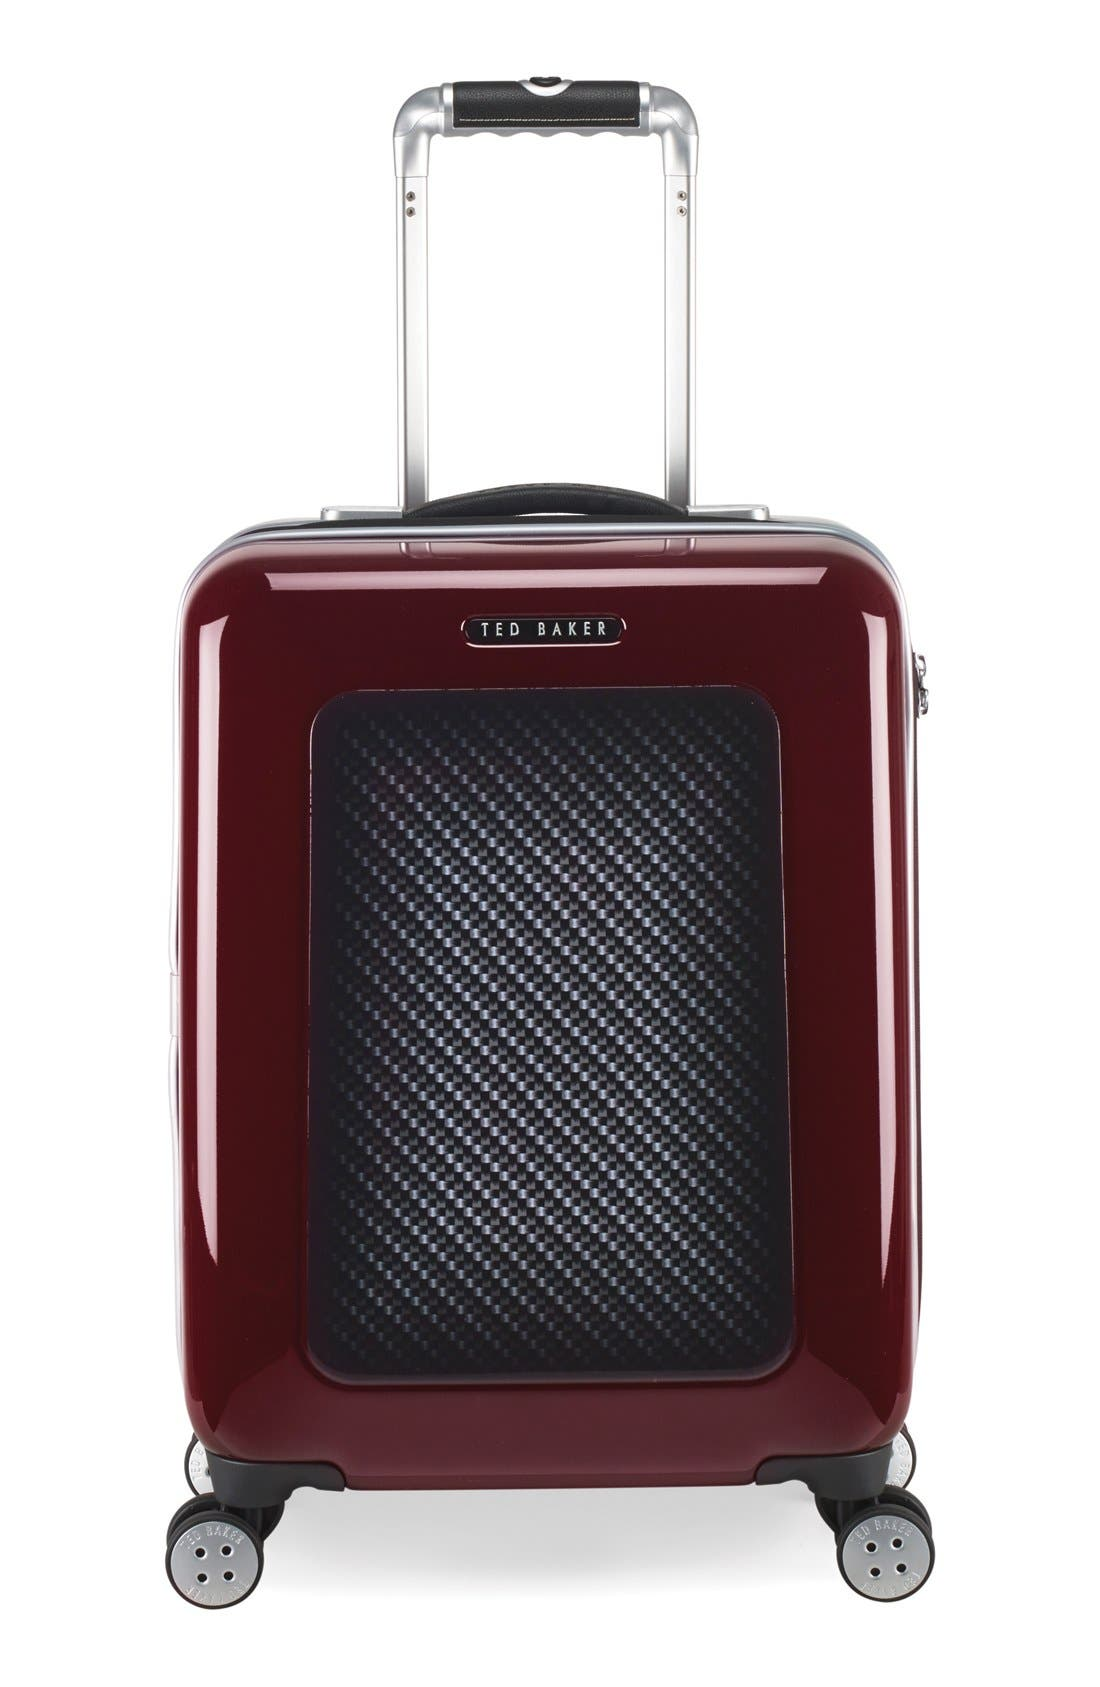 Ted Baker London 'Small Burgundy' Four Wheel Suitcase (22 Inch)